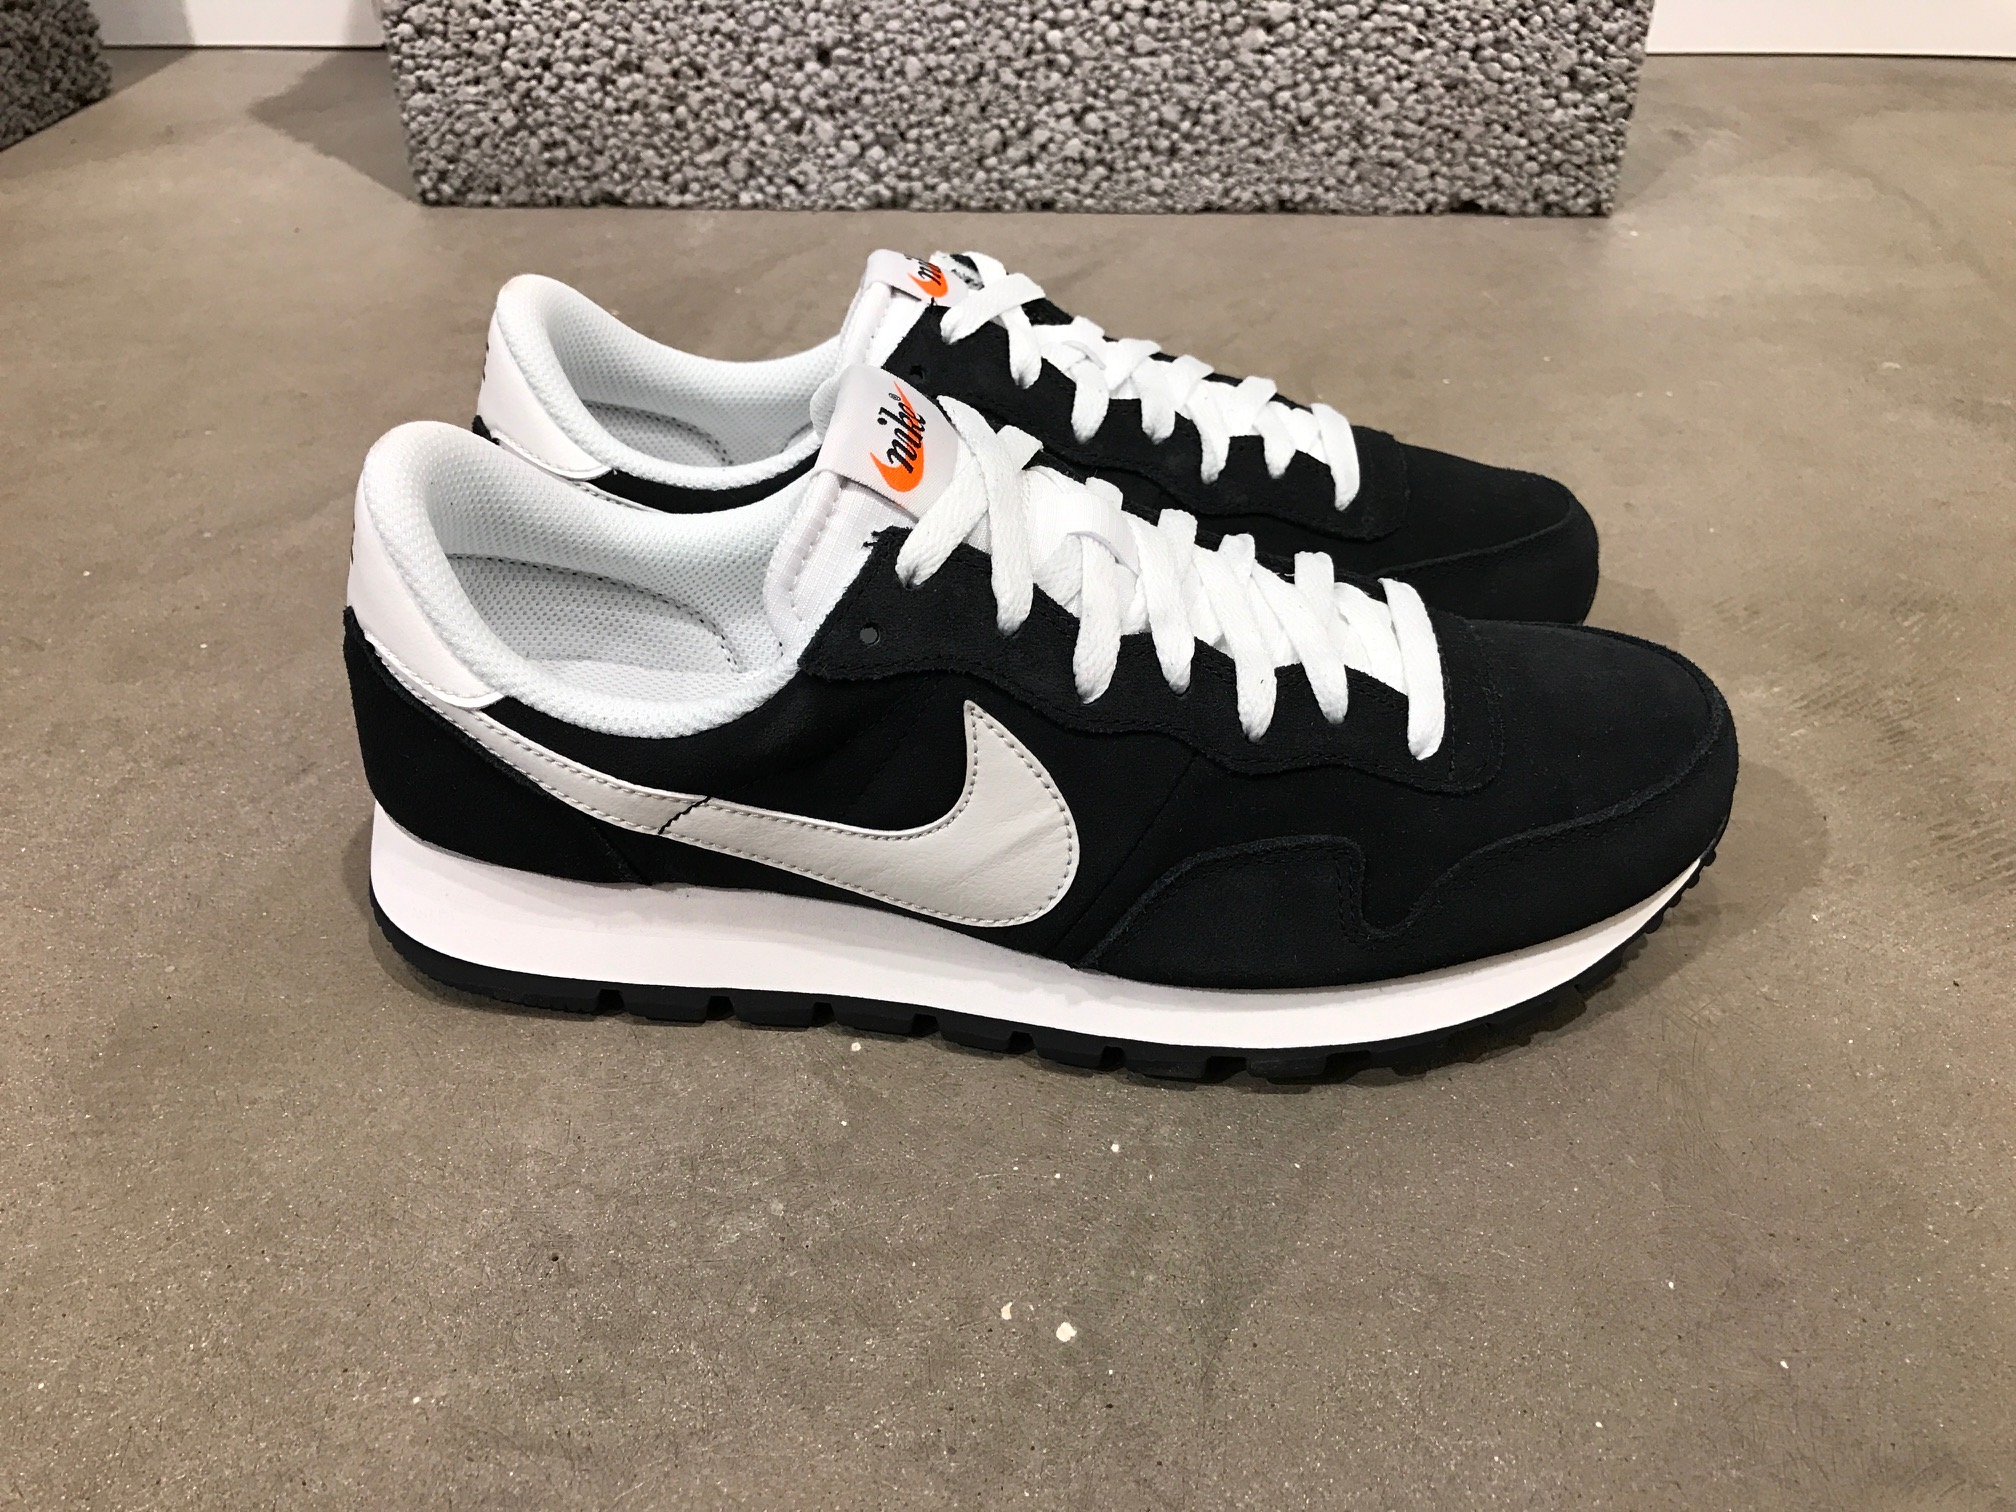 599a8c09dbb Nike Air Pegasus 83 LTR – Black   Summit White – STASP